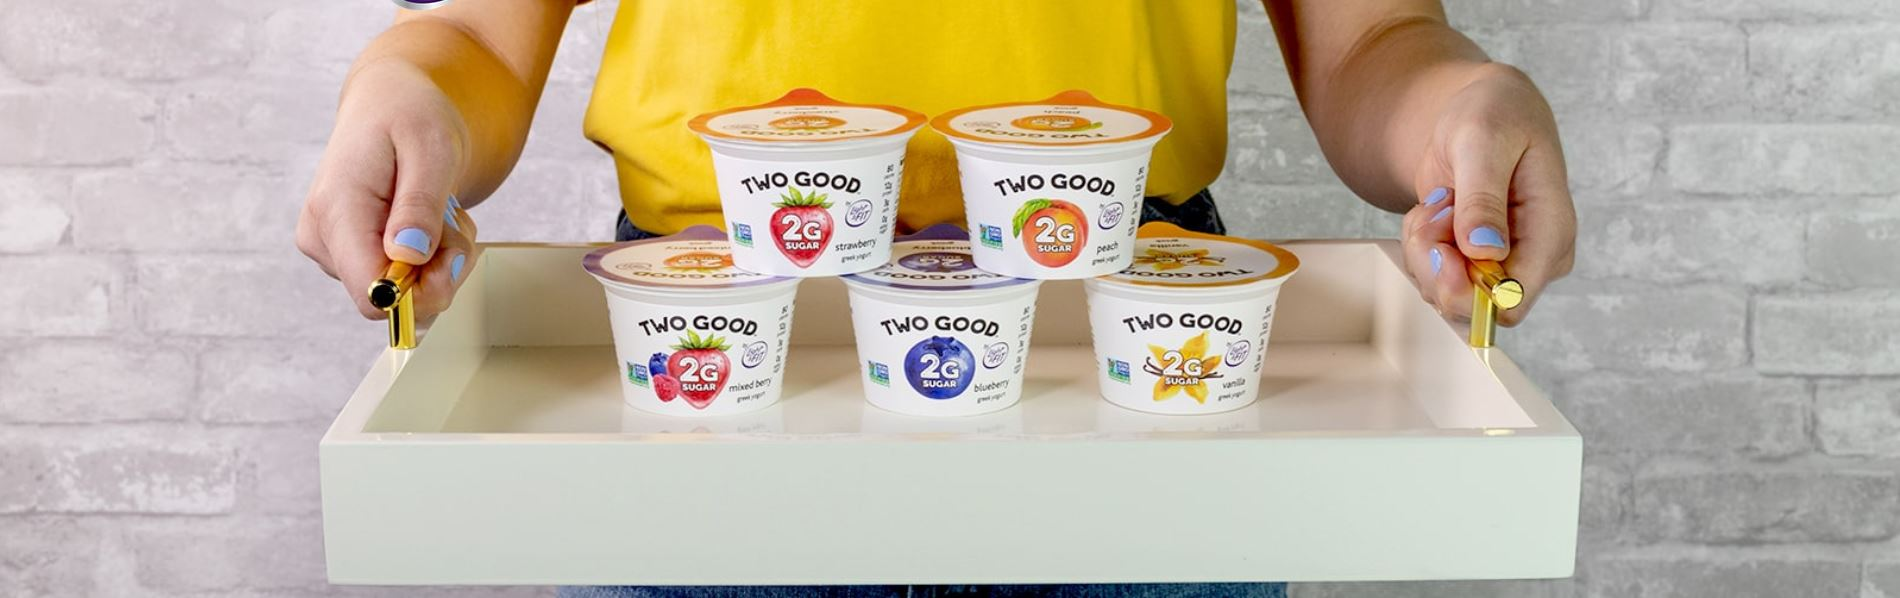 Two Good Yogurt tray, Danone